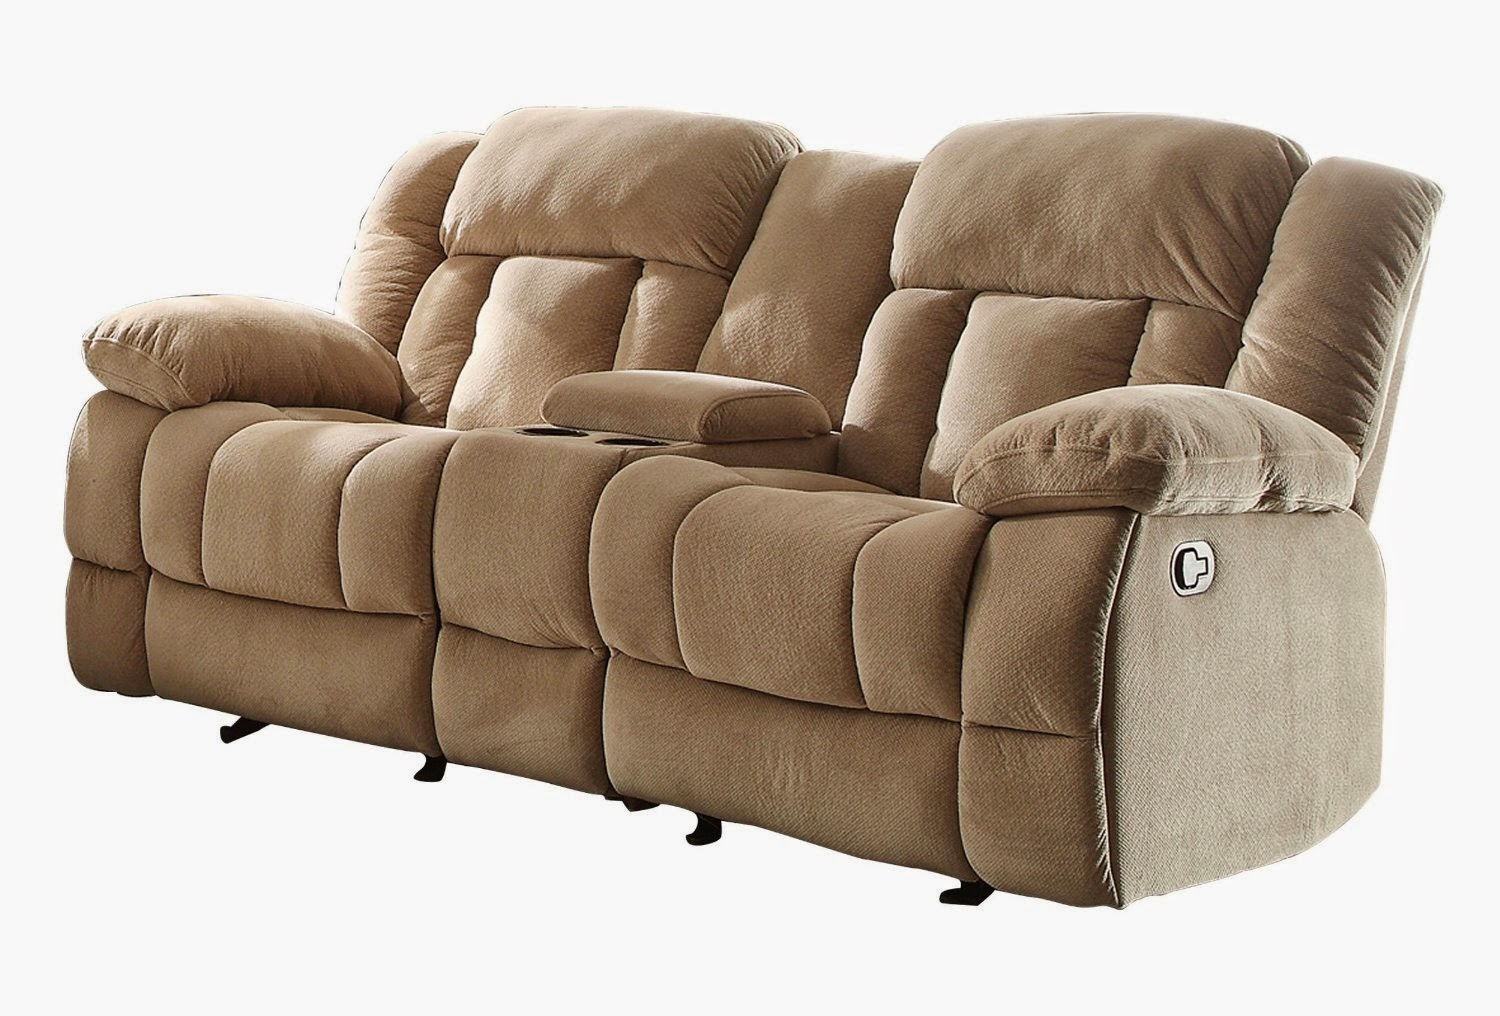 Where Is The Best Place To Buy Recliner Sofa 2 Seat Reclining Sofa Microfiber